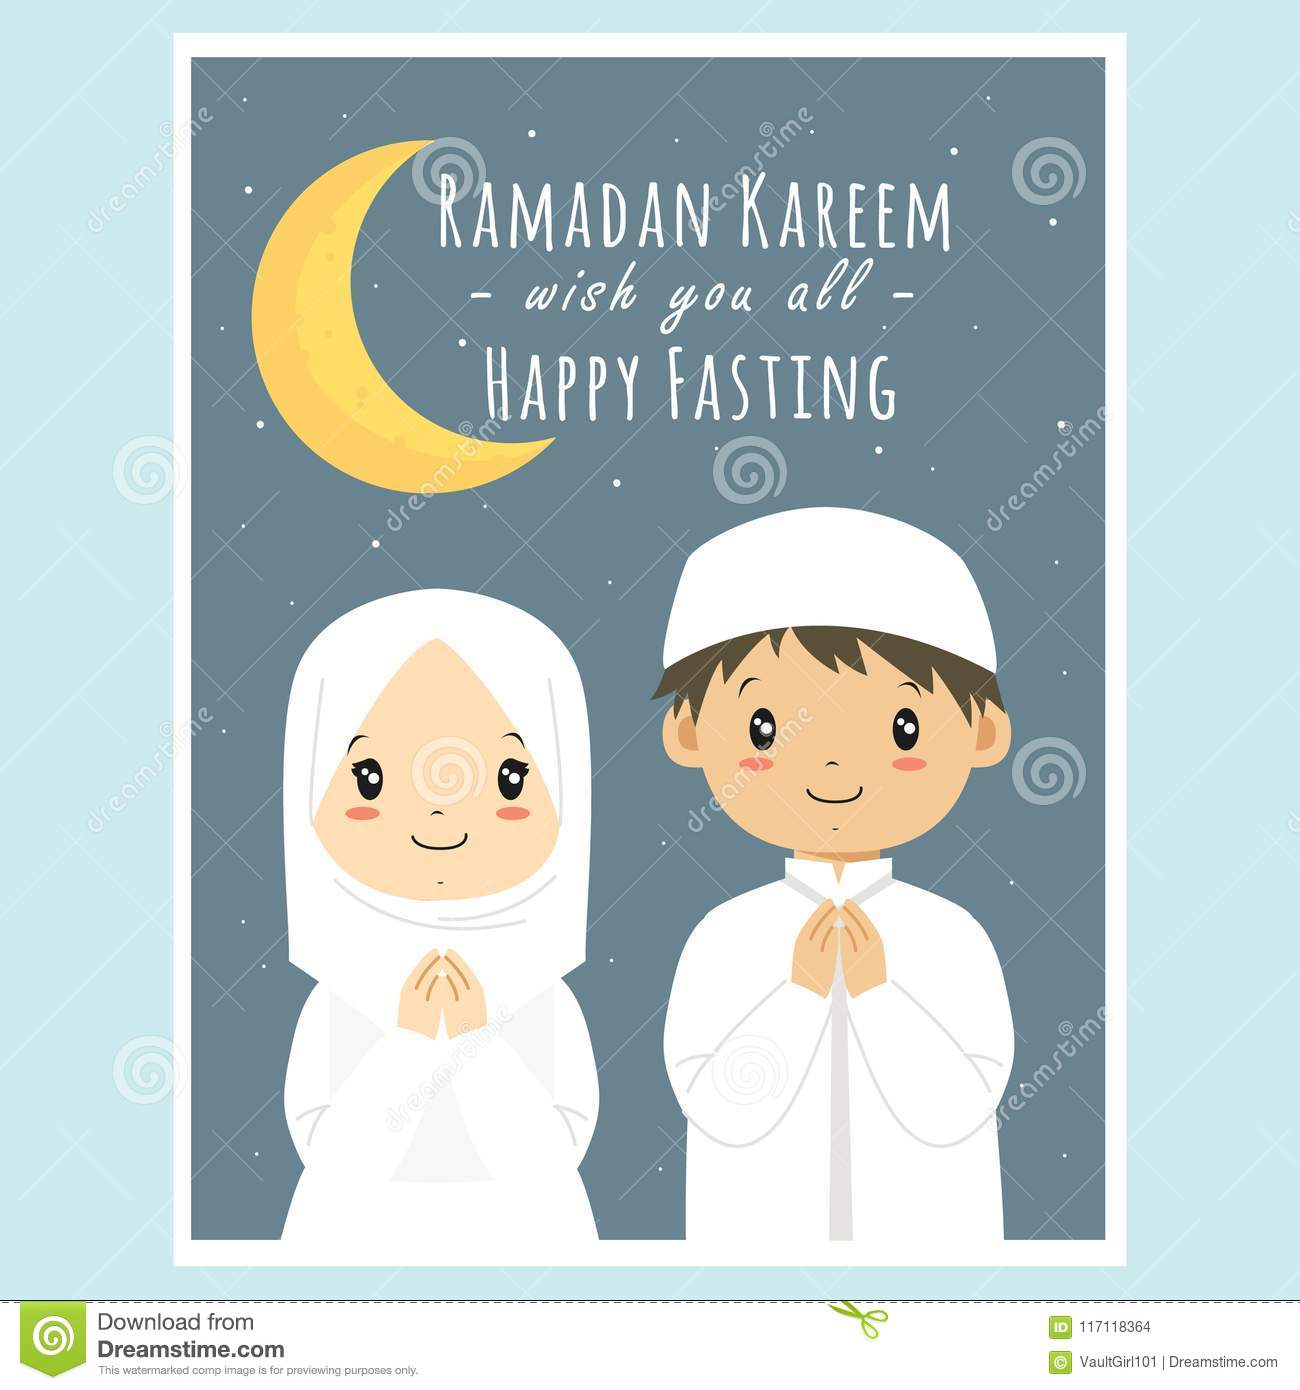 photograph about Ramadan Cards Printable titled Satisfied Fasting, Ramadan Kareem Greeting Card Vector Inventory